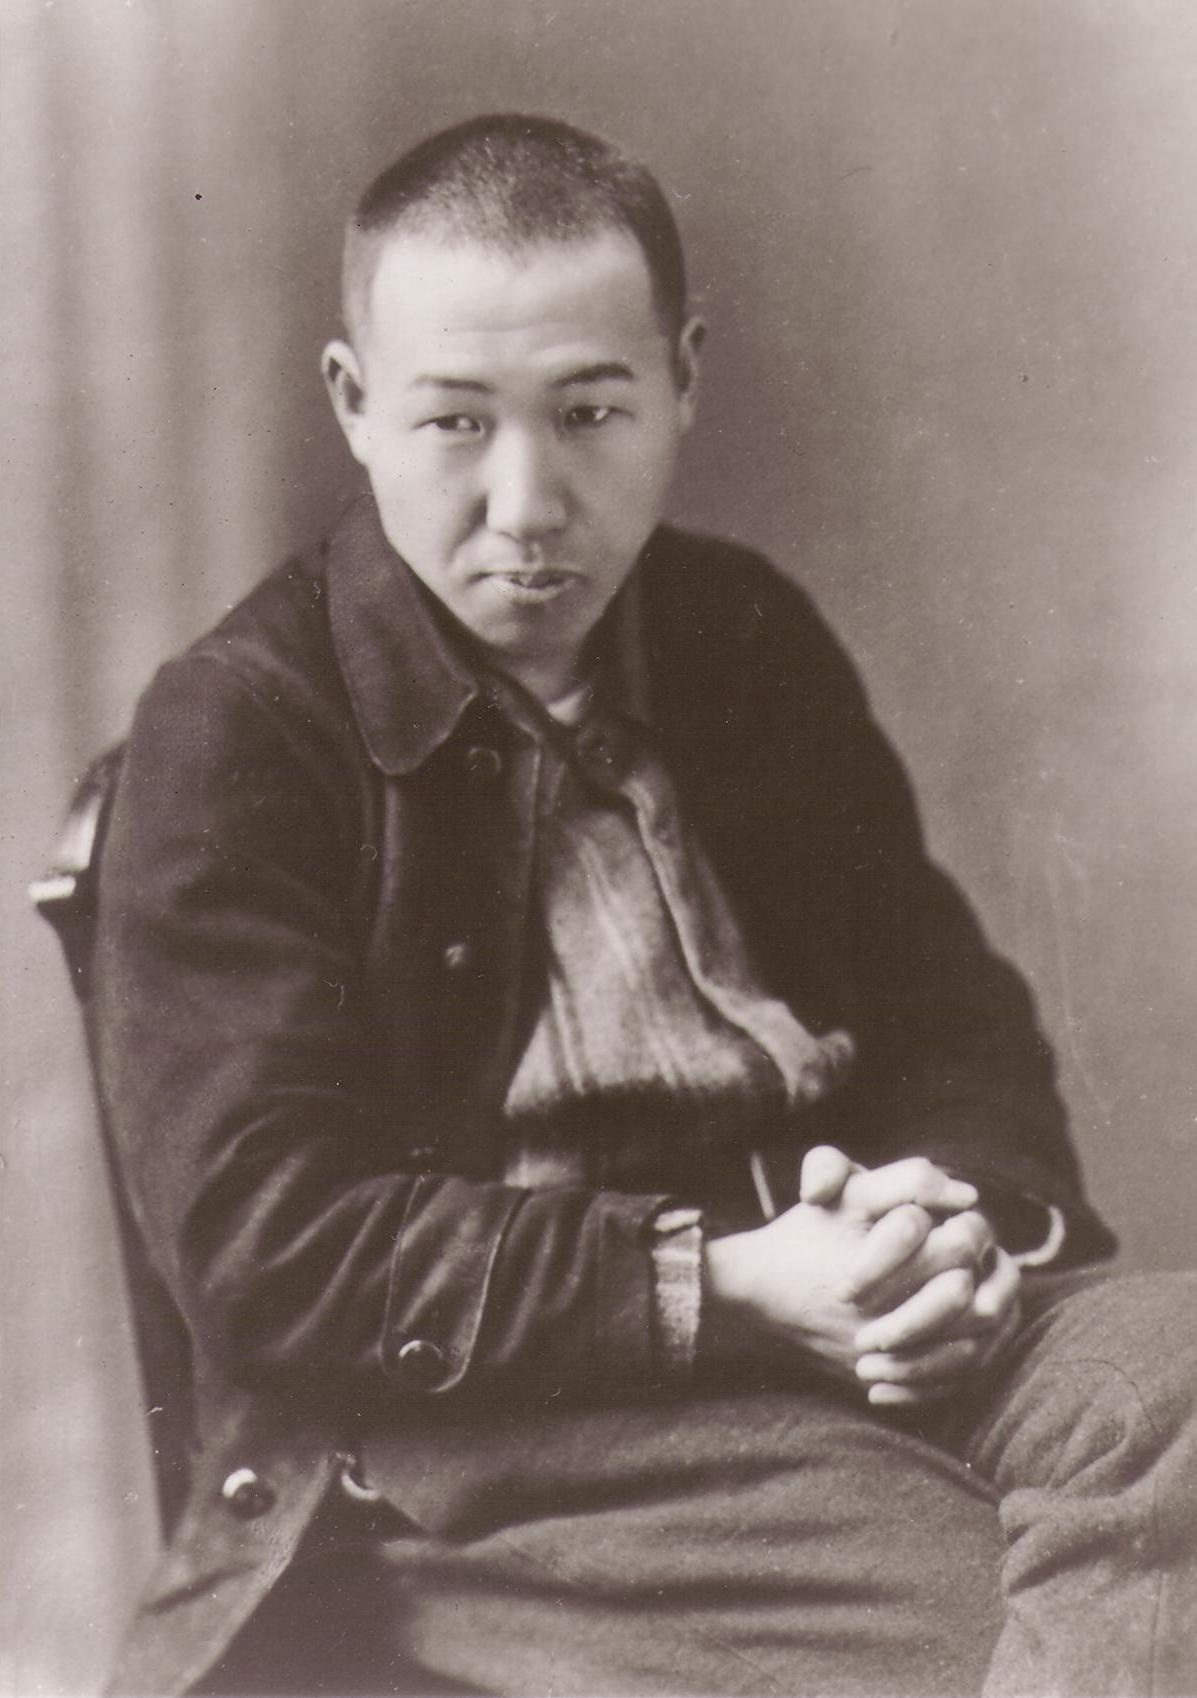 Japanese poet and author of children